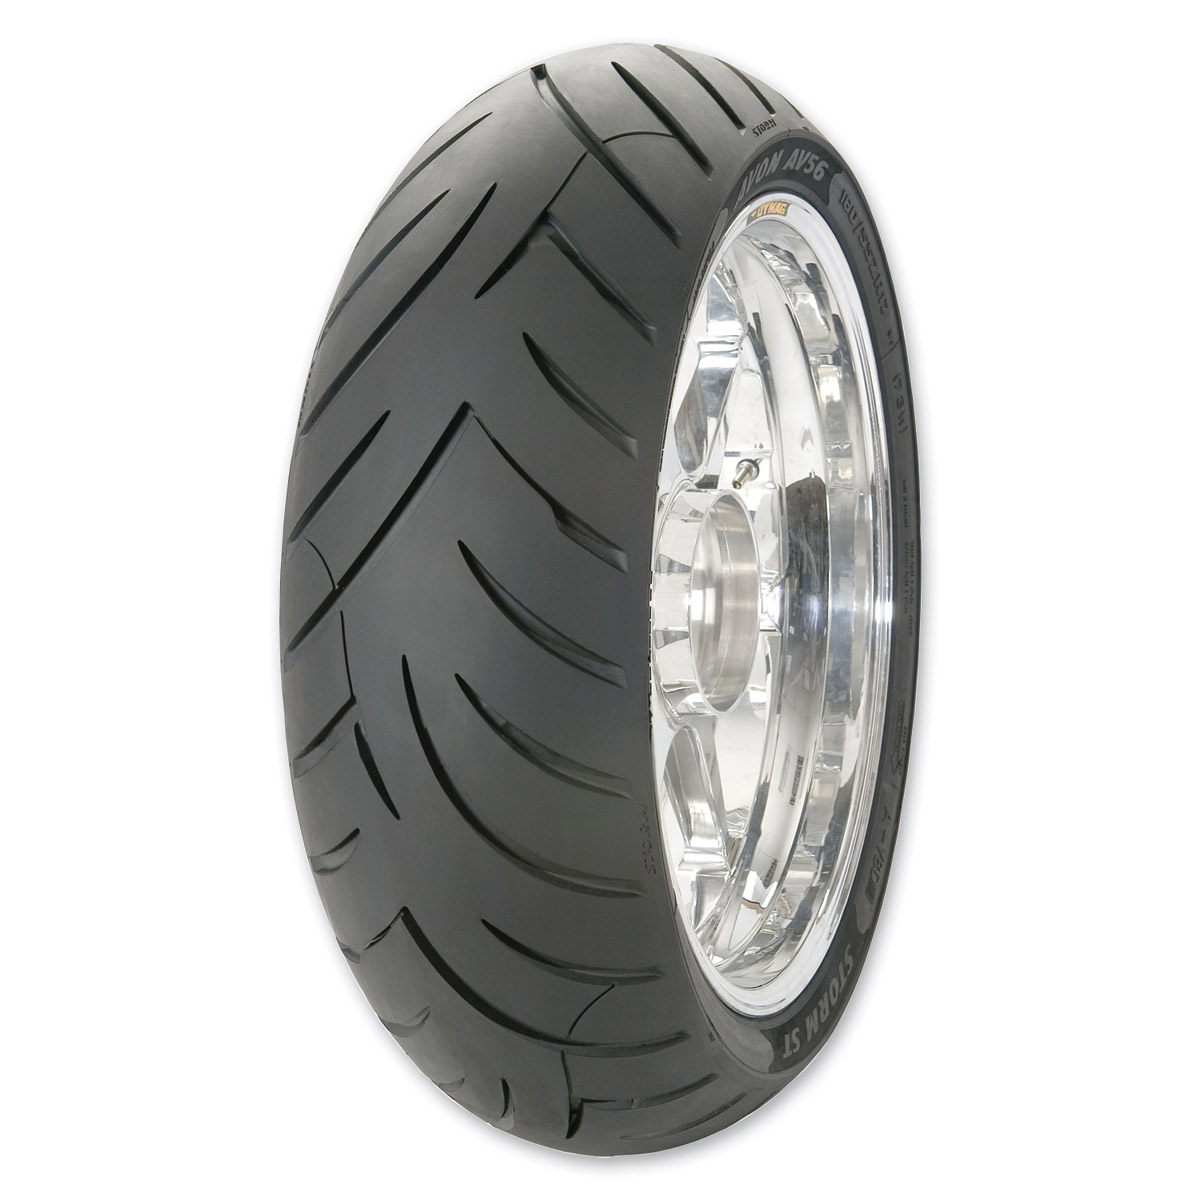 Avon Storm 2 Ultra Sport 160/70R17 Rear Tire